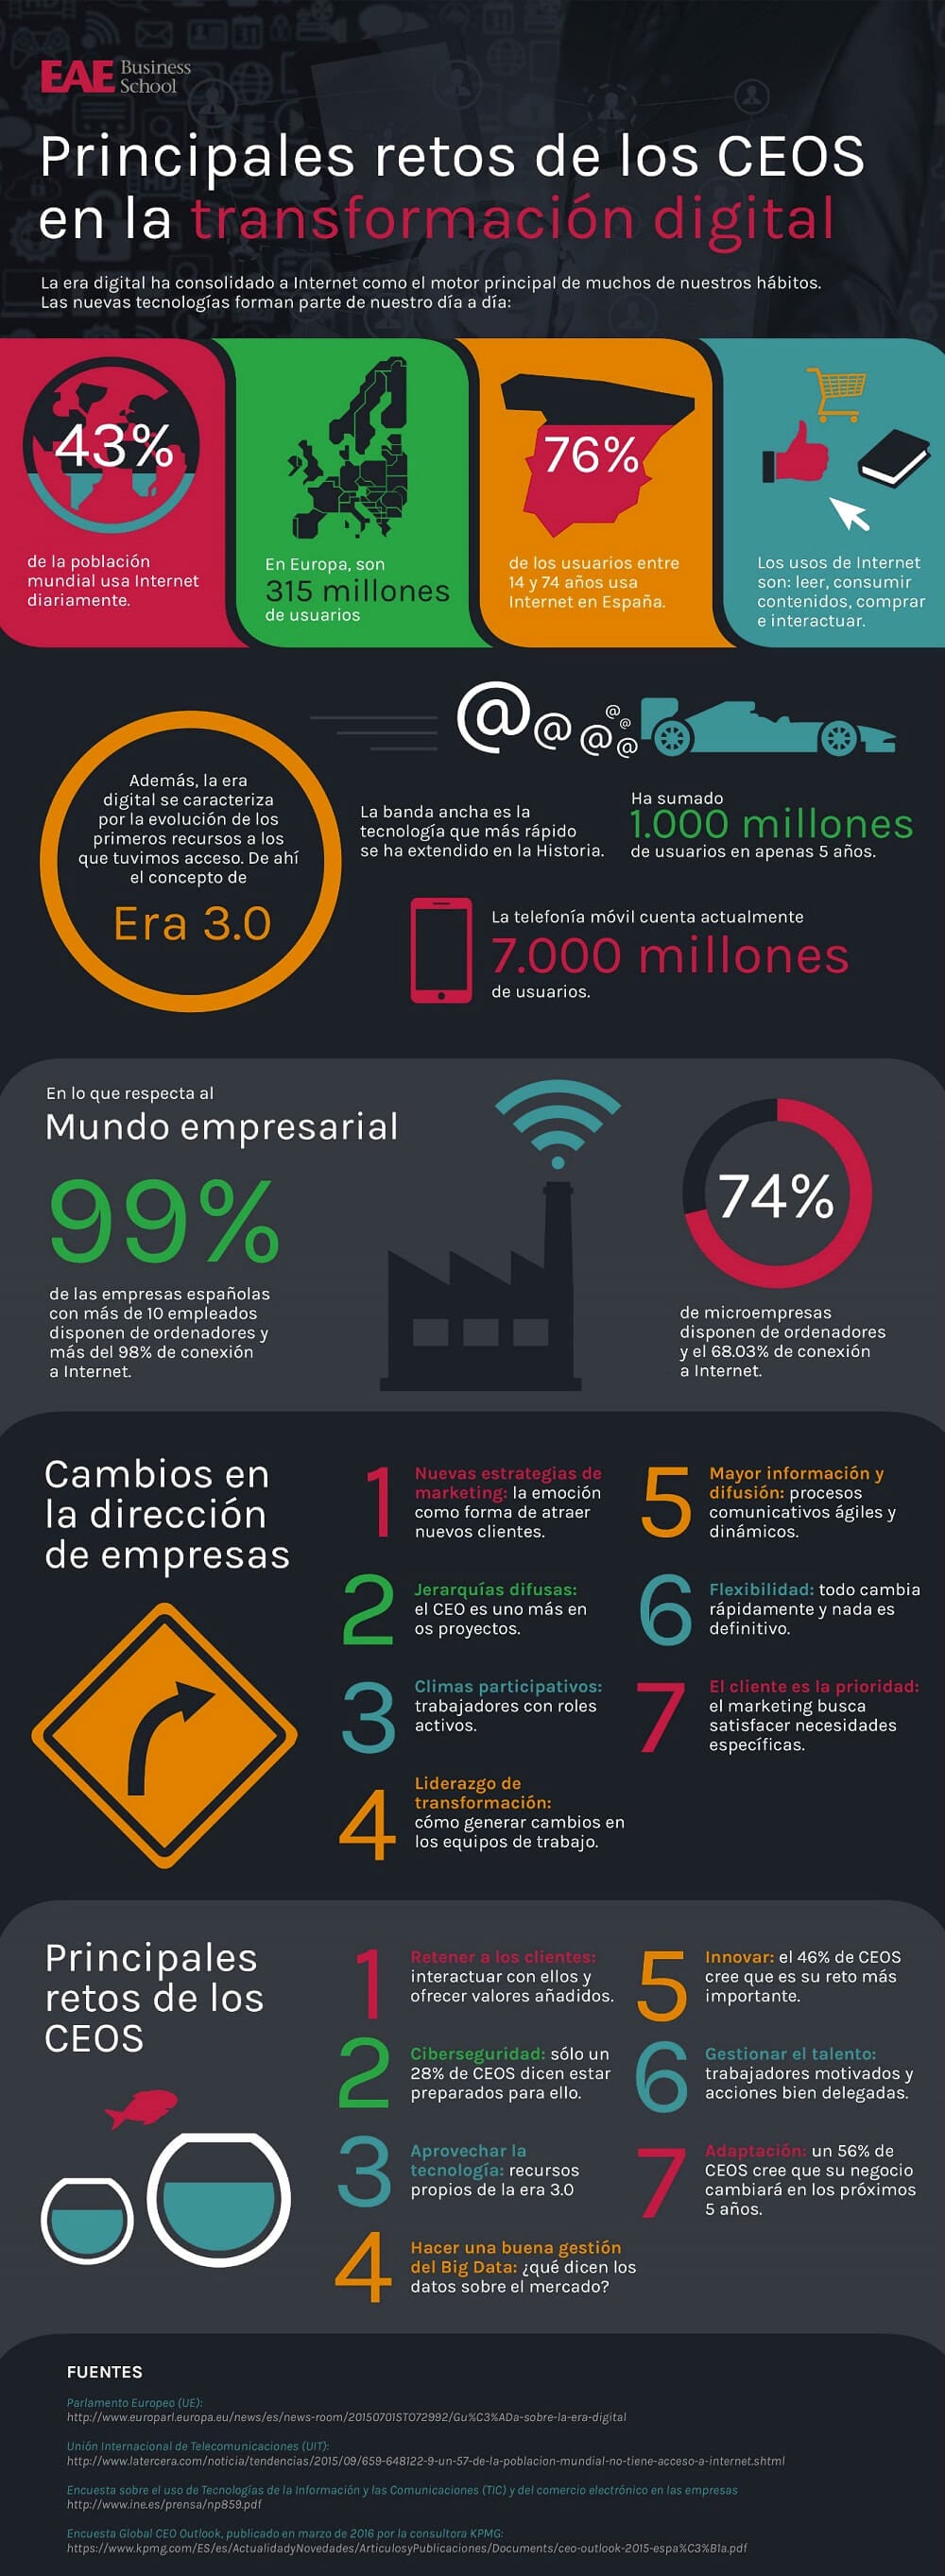 Transformacion digital de empresas